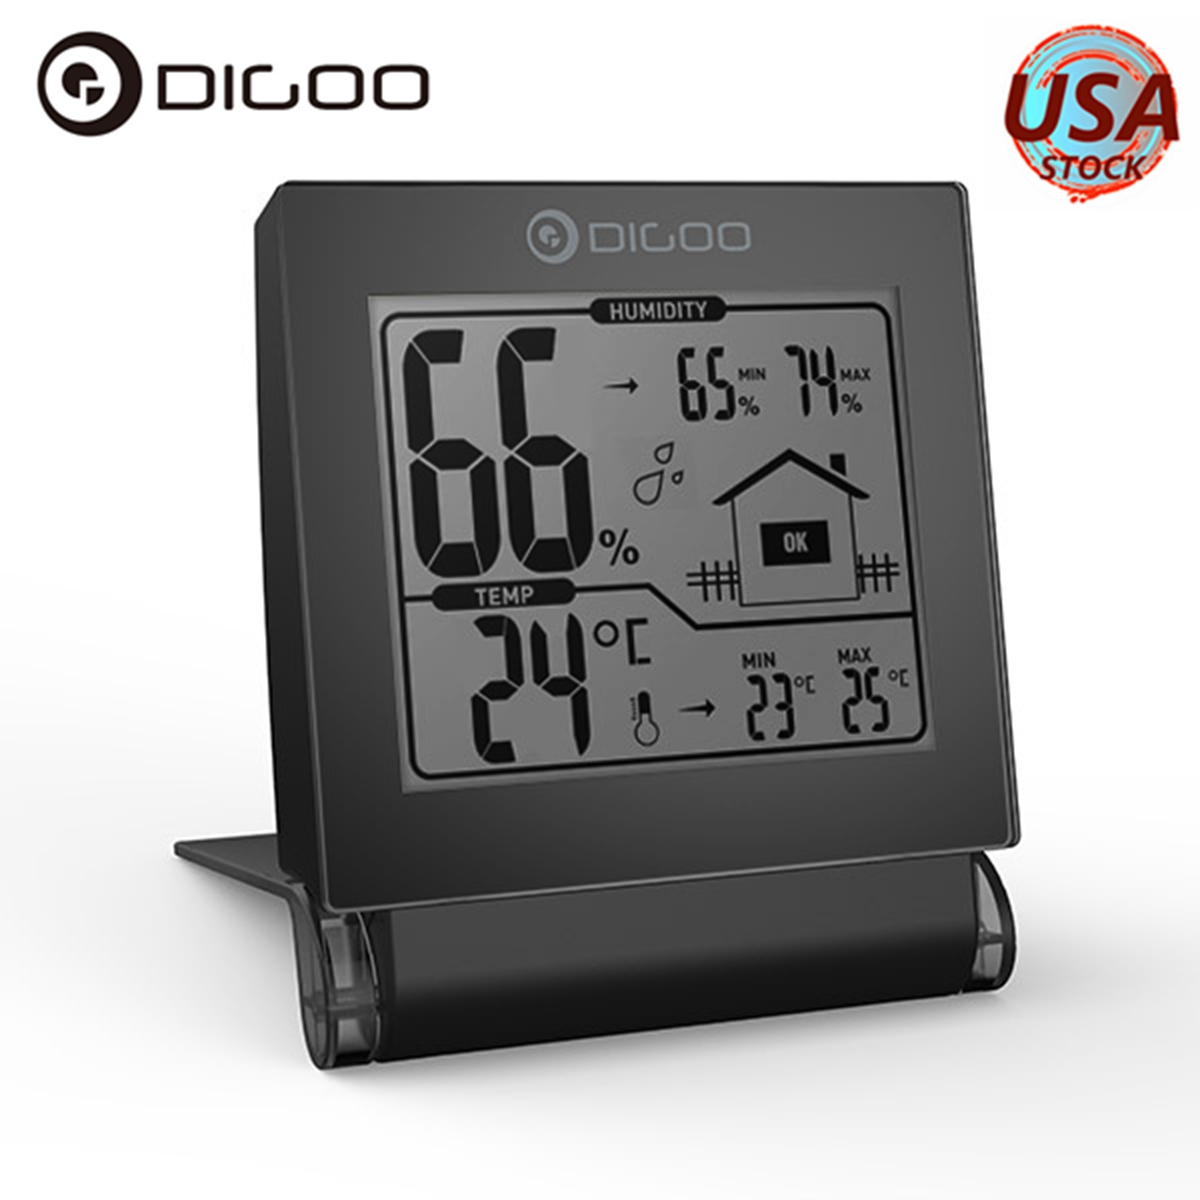 Digoo Wireless Foldable Indoor Thermometer Hygrometer Digital LCD Display Max Min Temperature Humidity Trend Display Meter Monitor